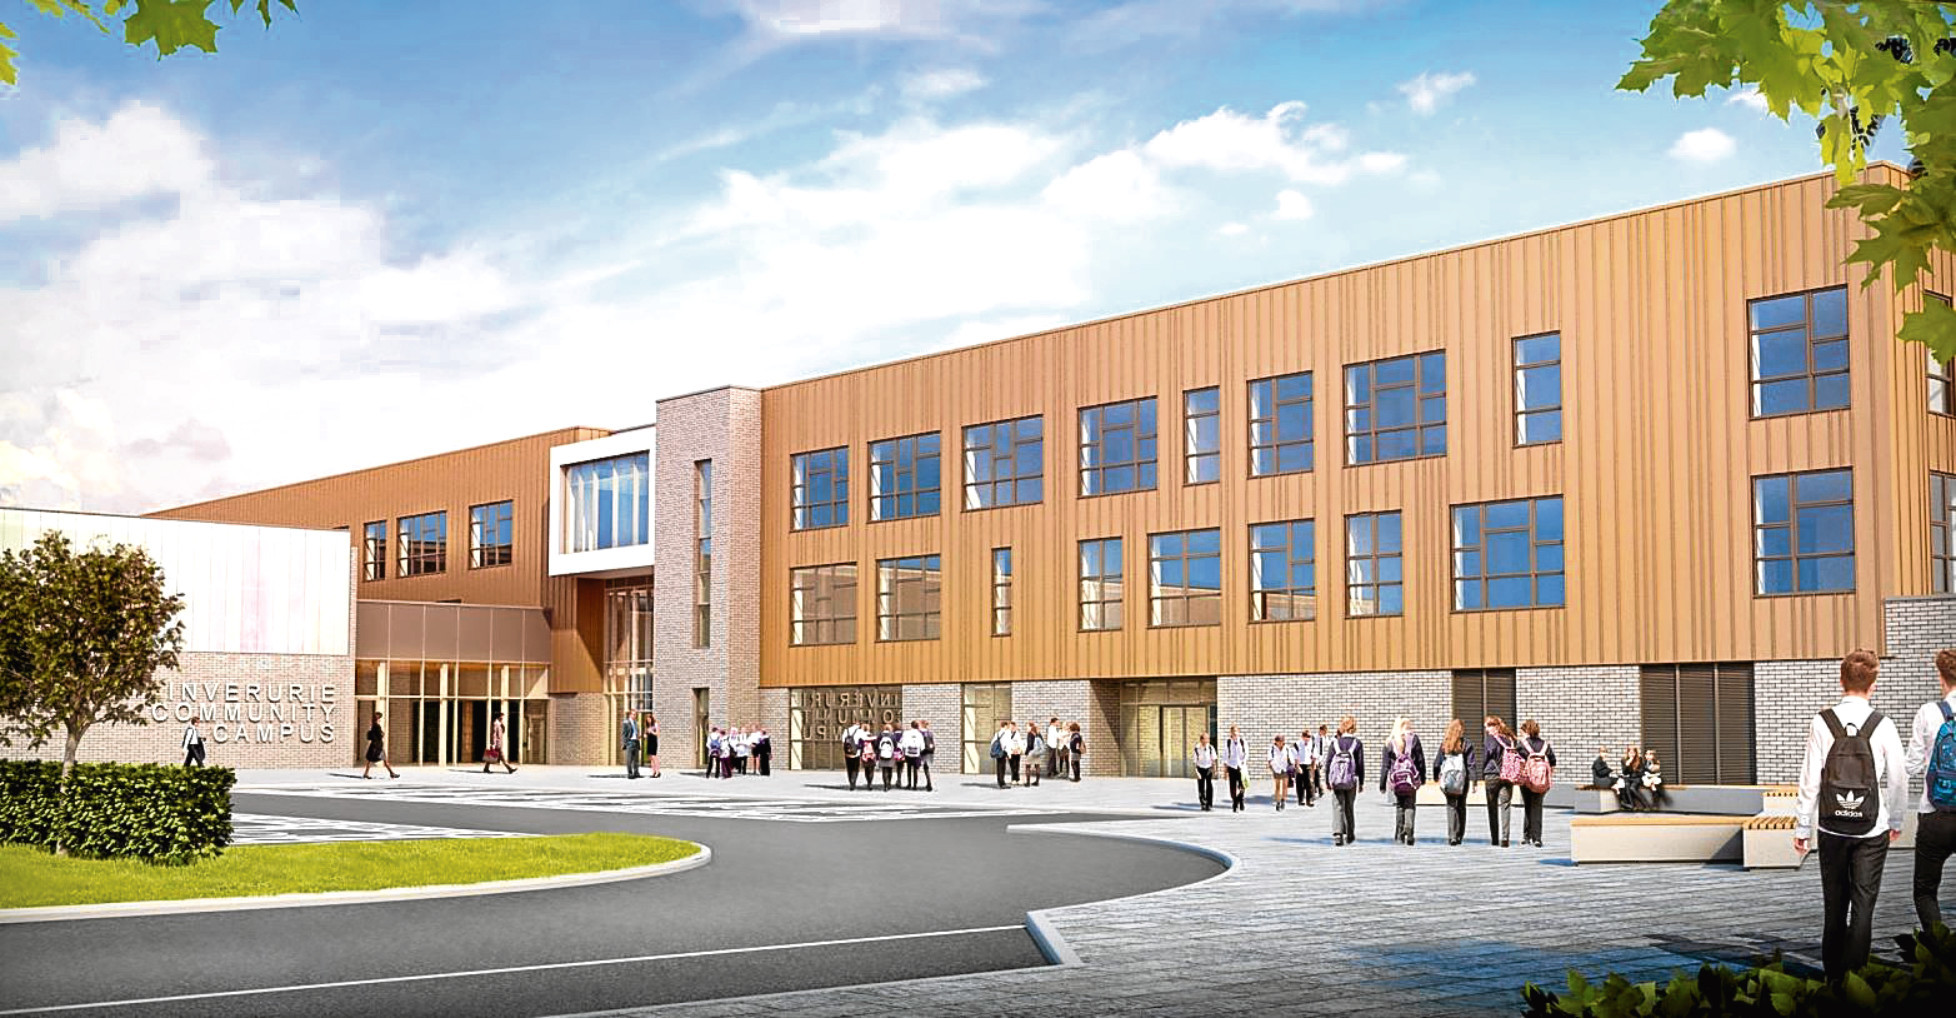 An artist impression of the planned community campus at Inverurie.